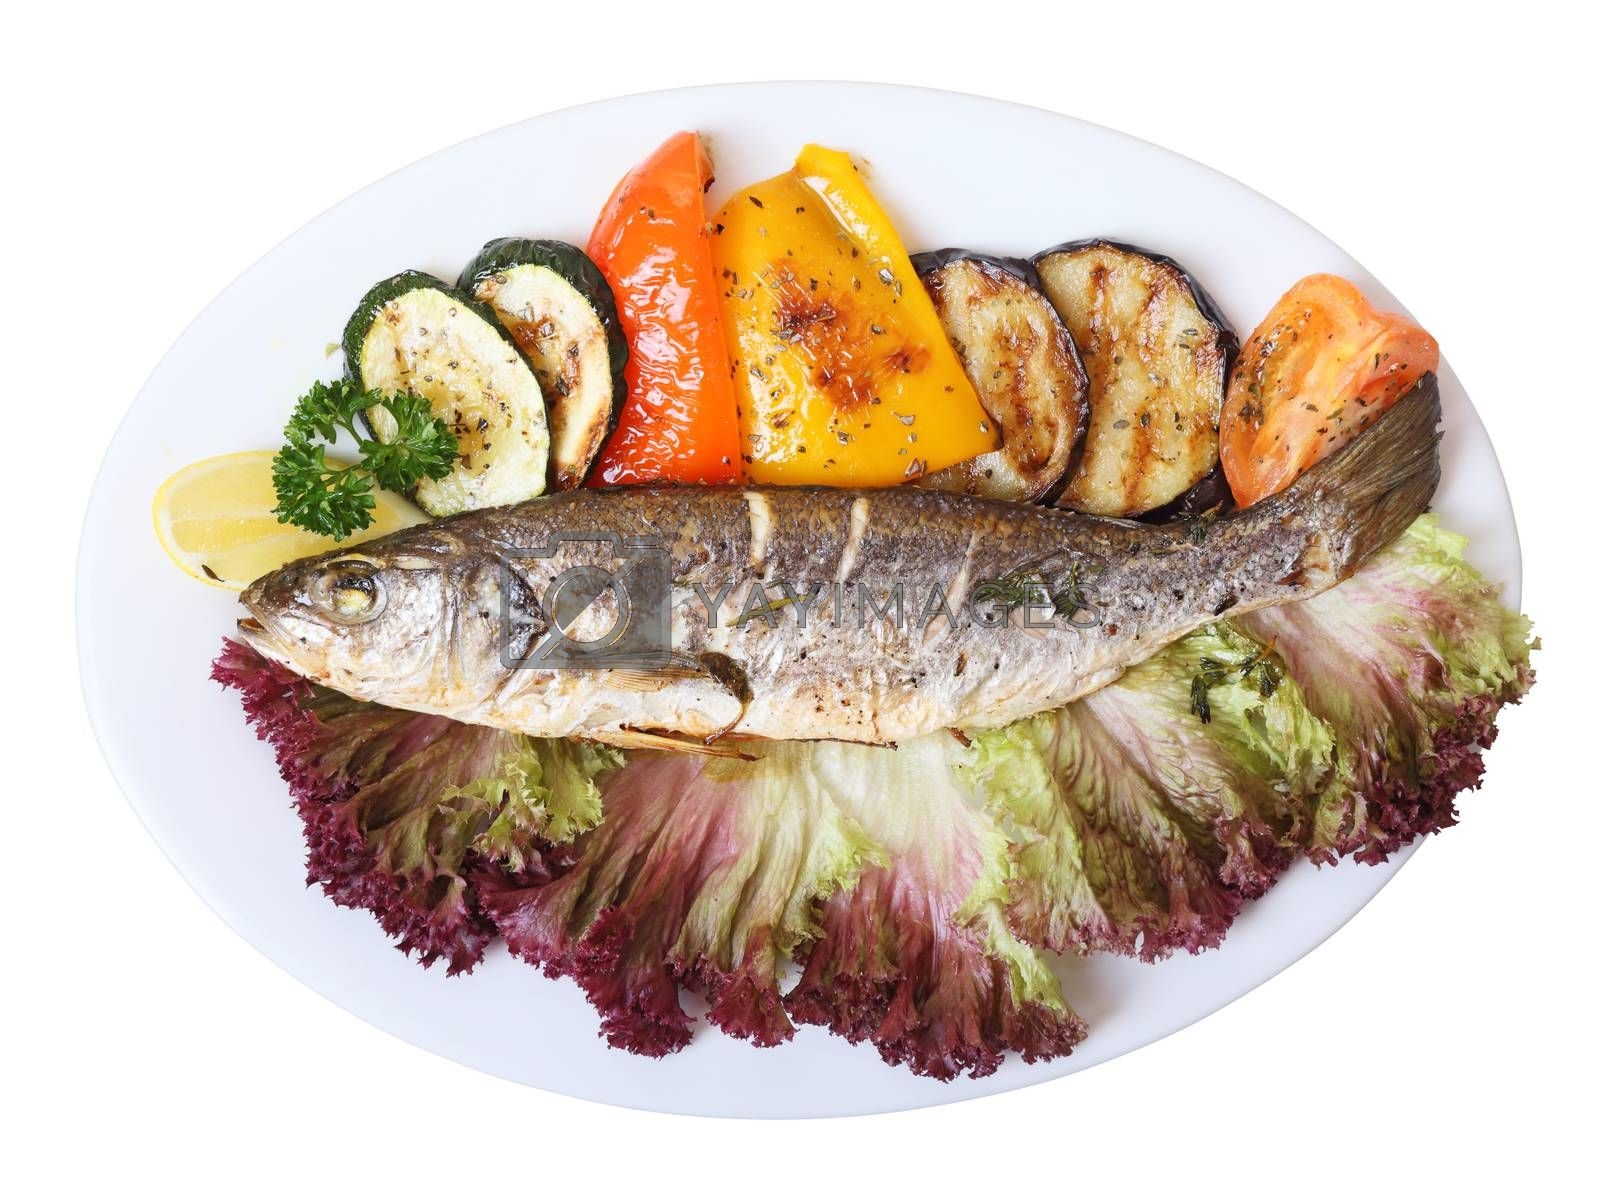 Royalty free image of seabass with vegetables by whiterabbit